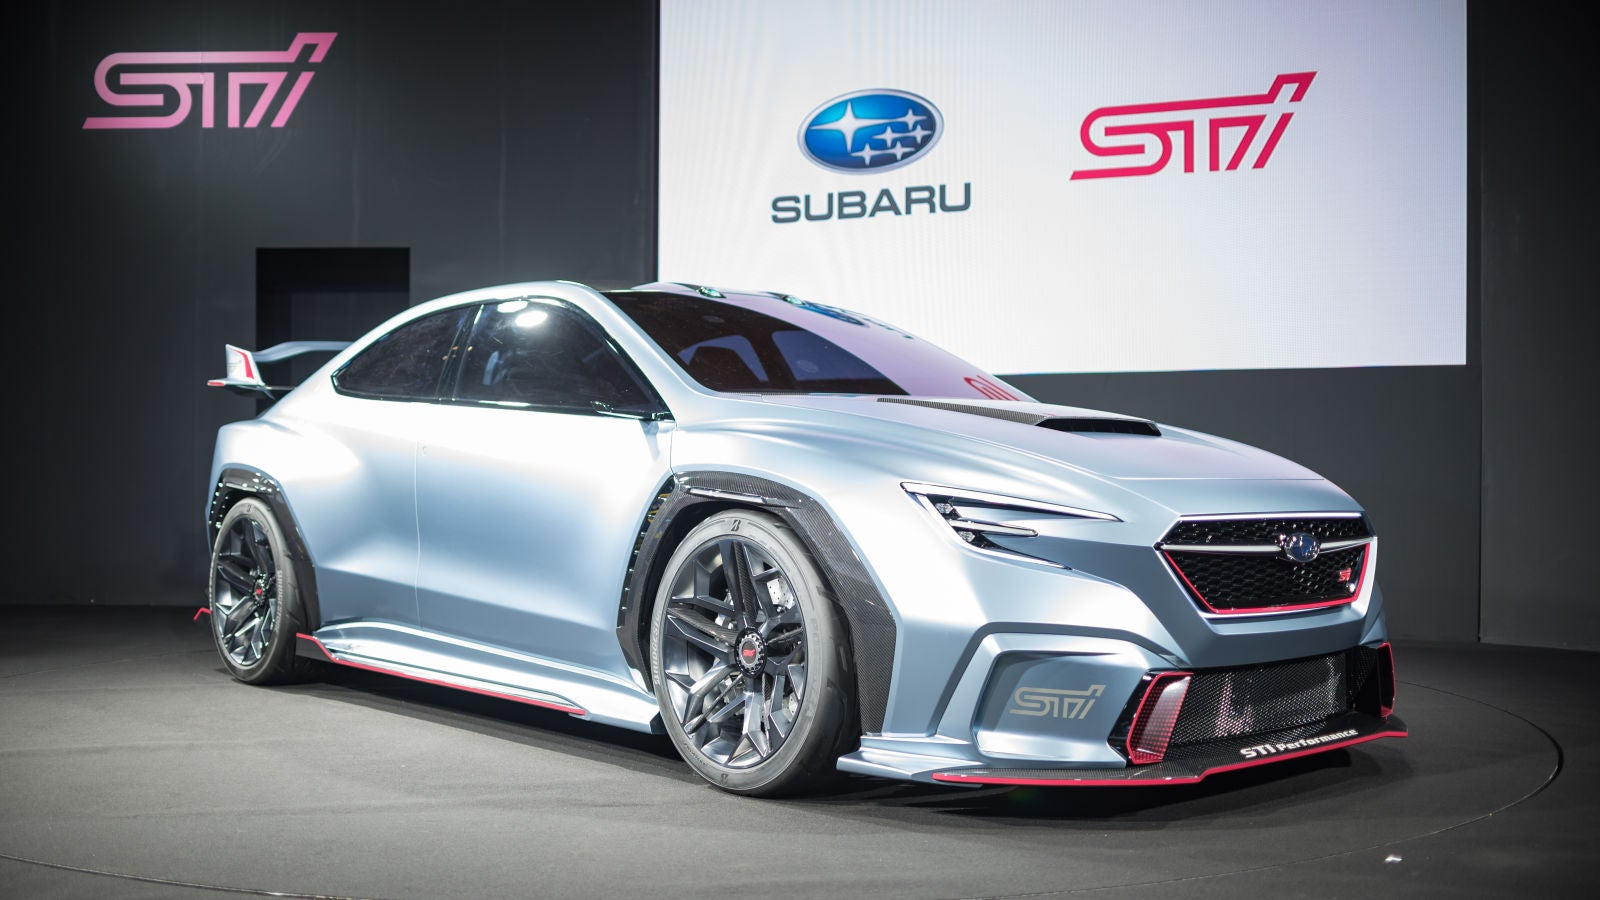 Report: The 2021 Subaru WRX STI Will Get A New Turbo Boxer Engine Making At Least 400 HP